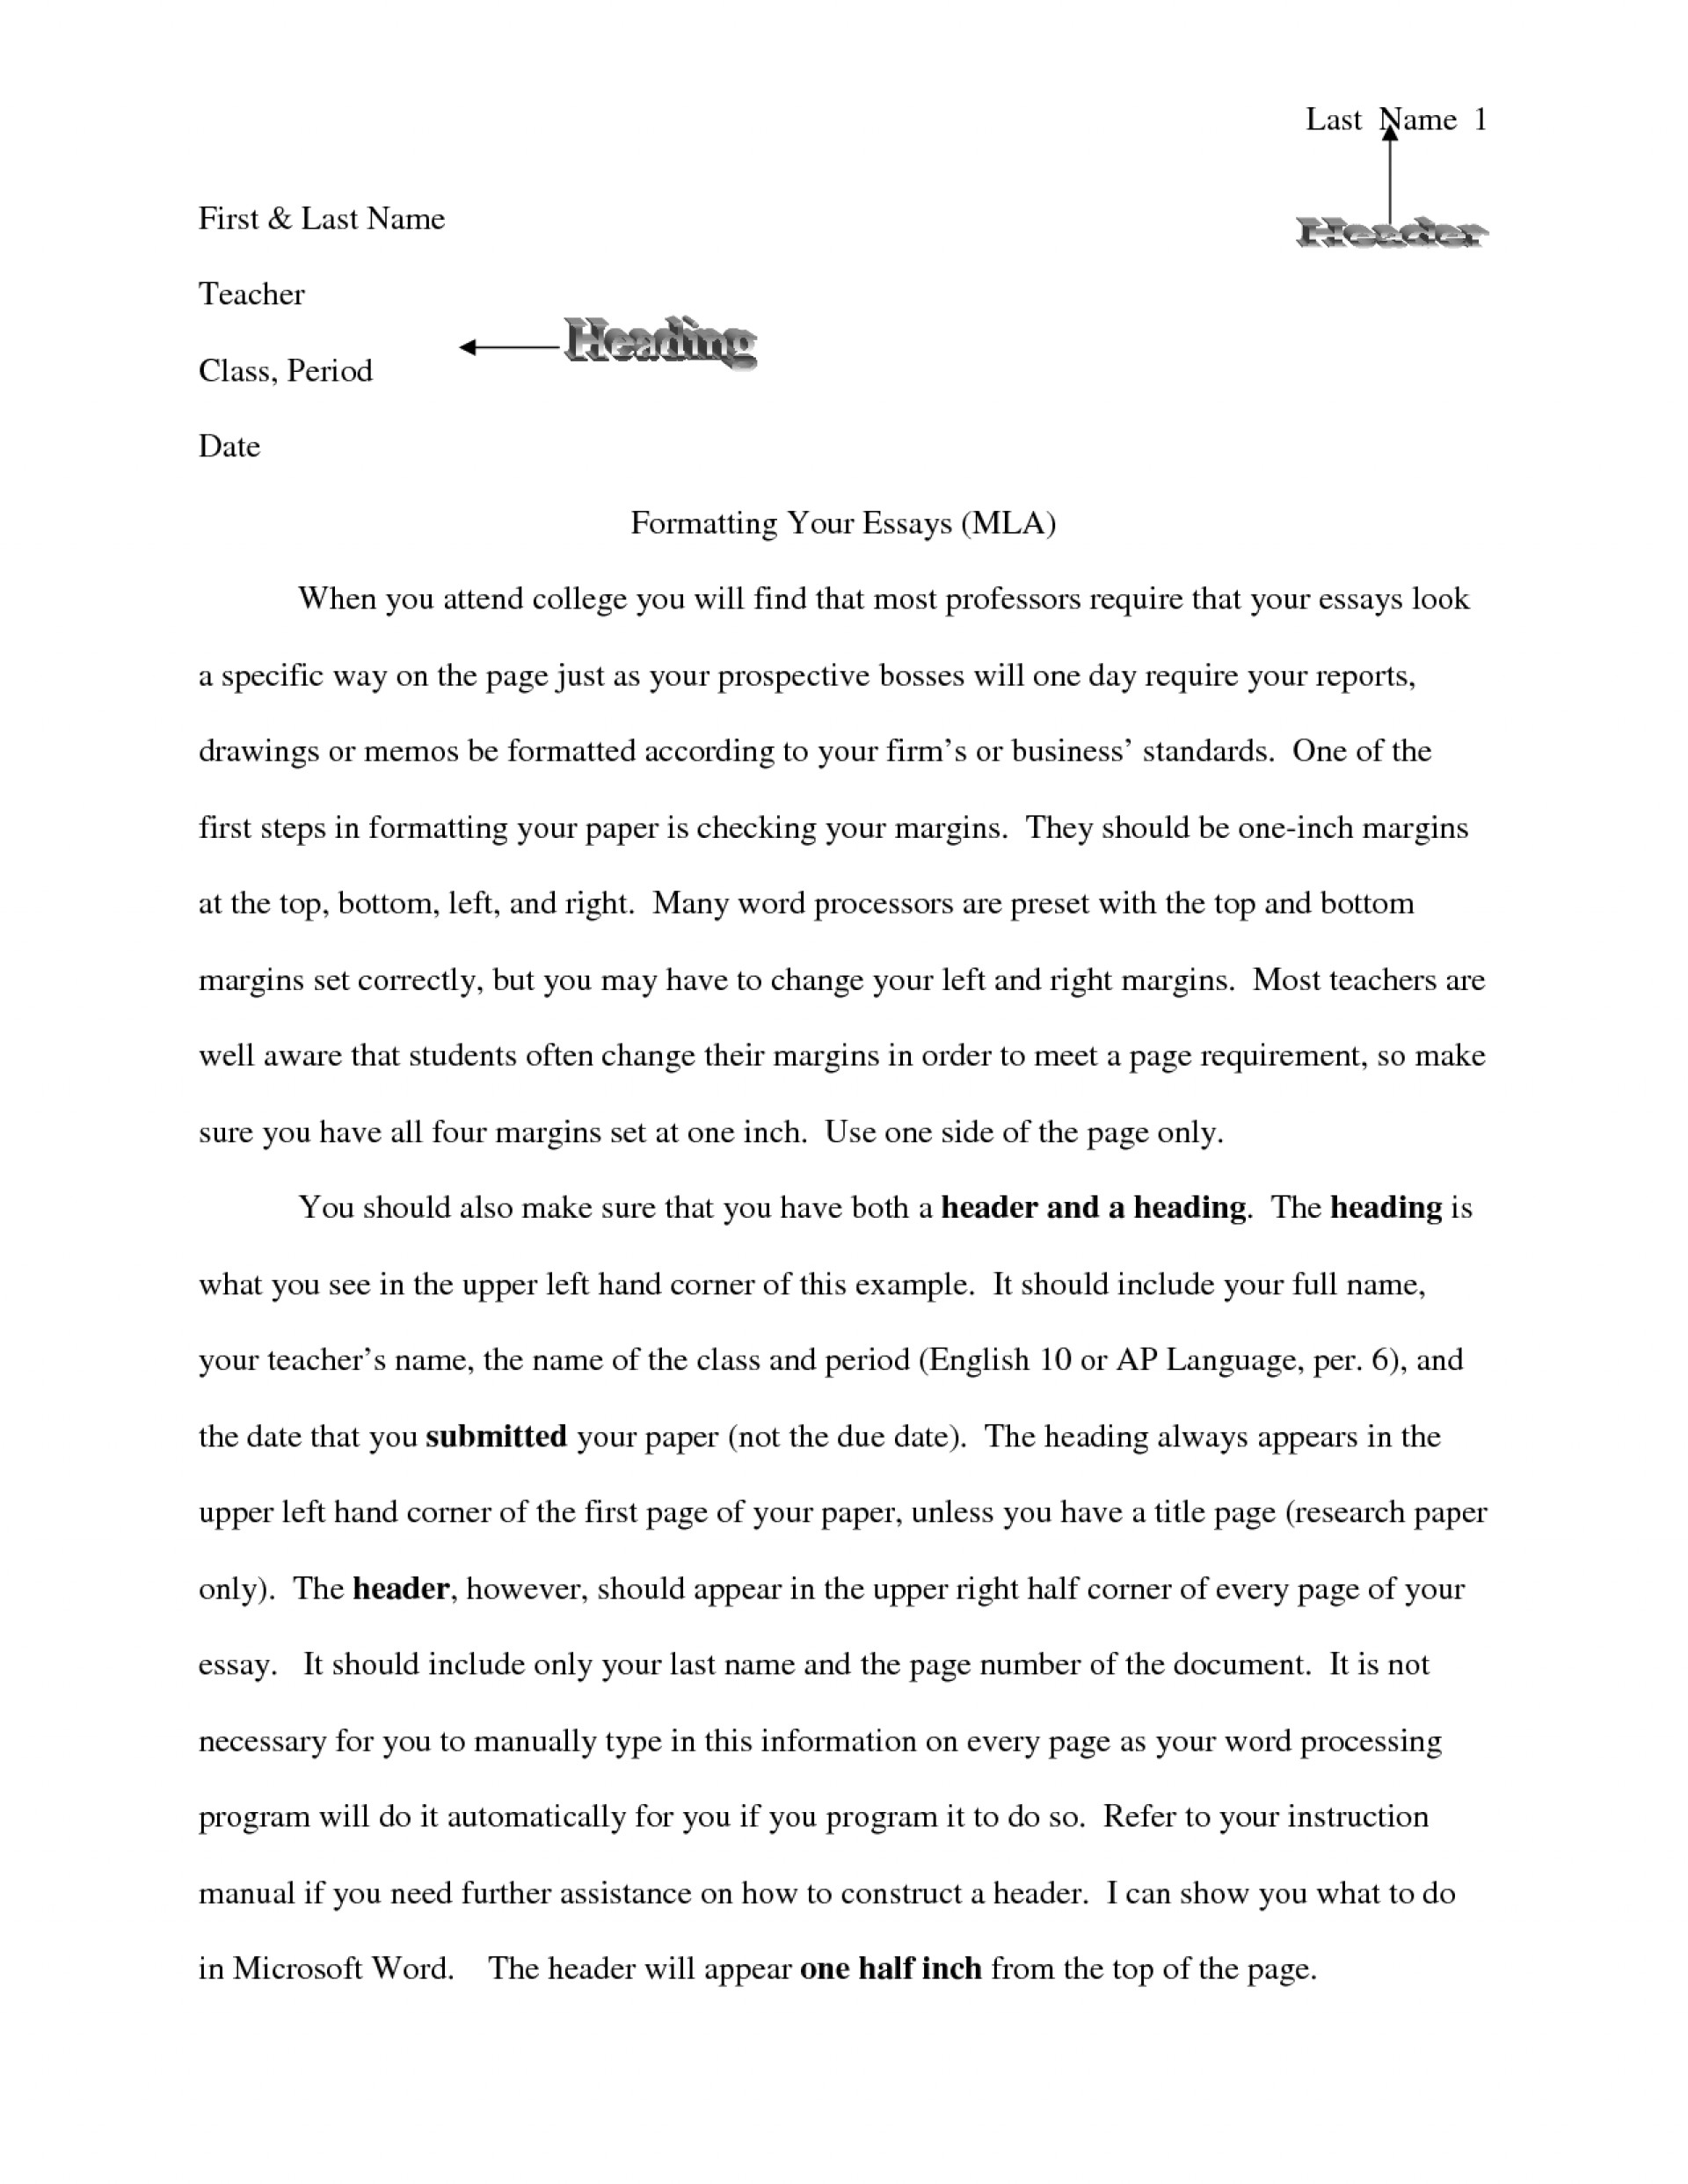 003 Nnftftofsn Essay Example College Incredible Heading Admissions Format Application Papers 1920